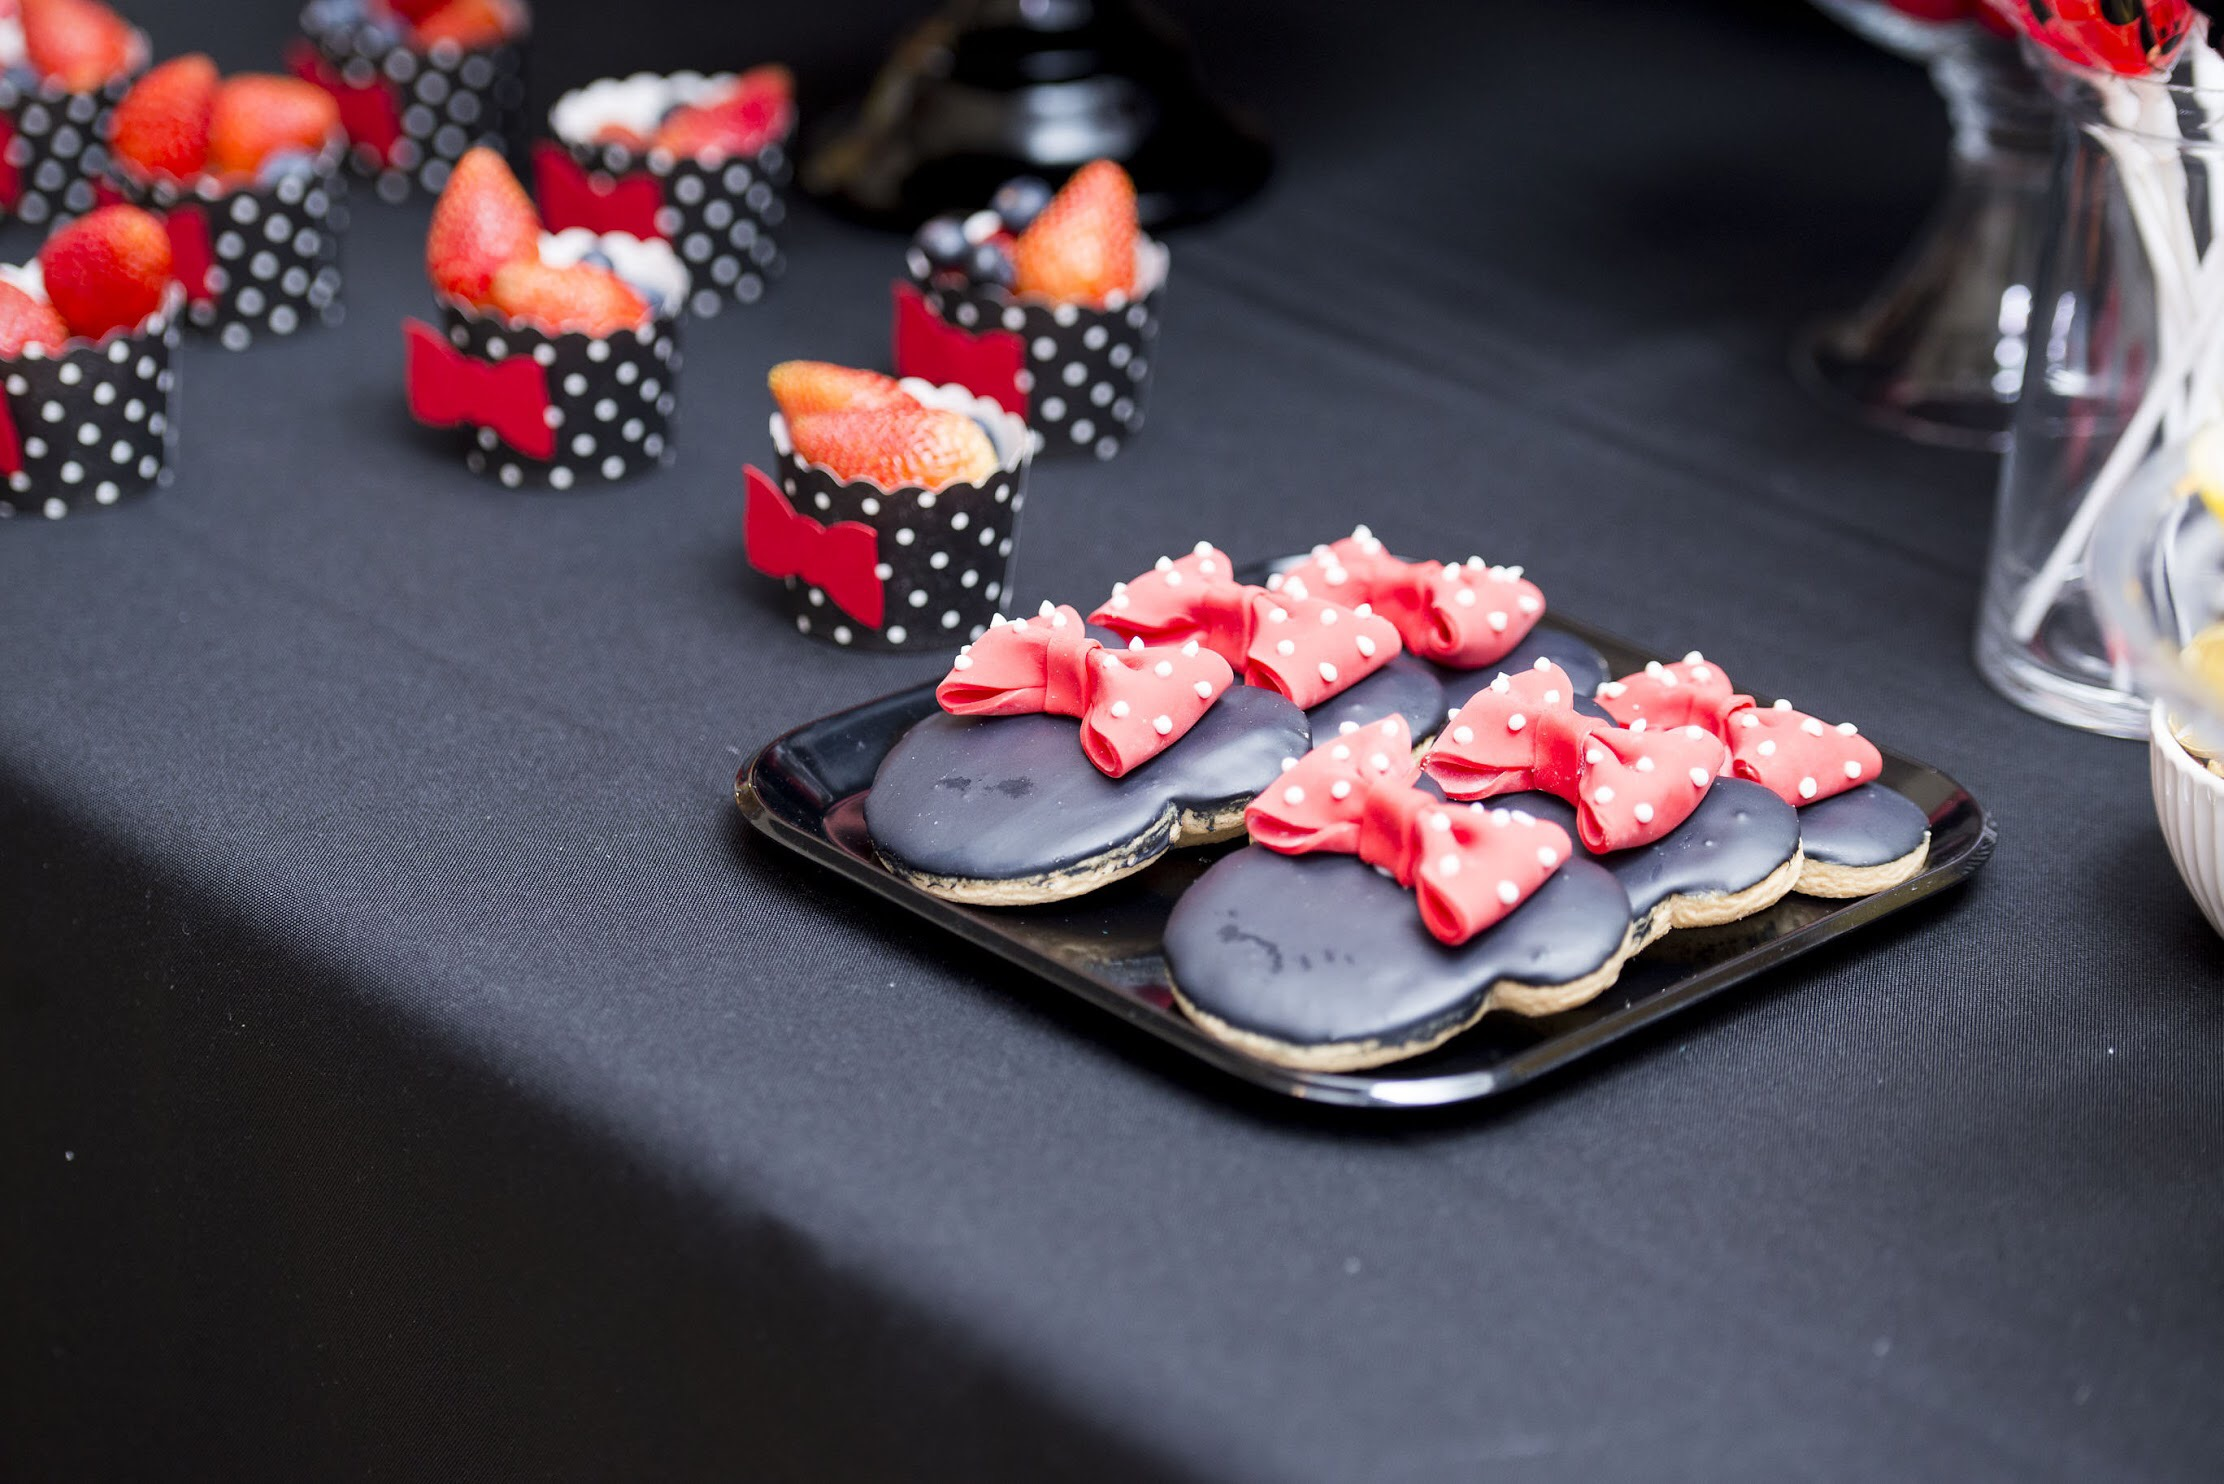 Minnie Mouse Cookies at a Disney Birthday party